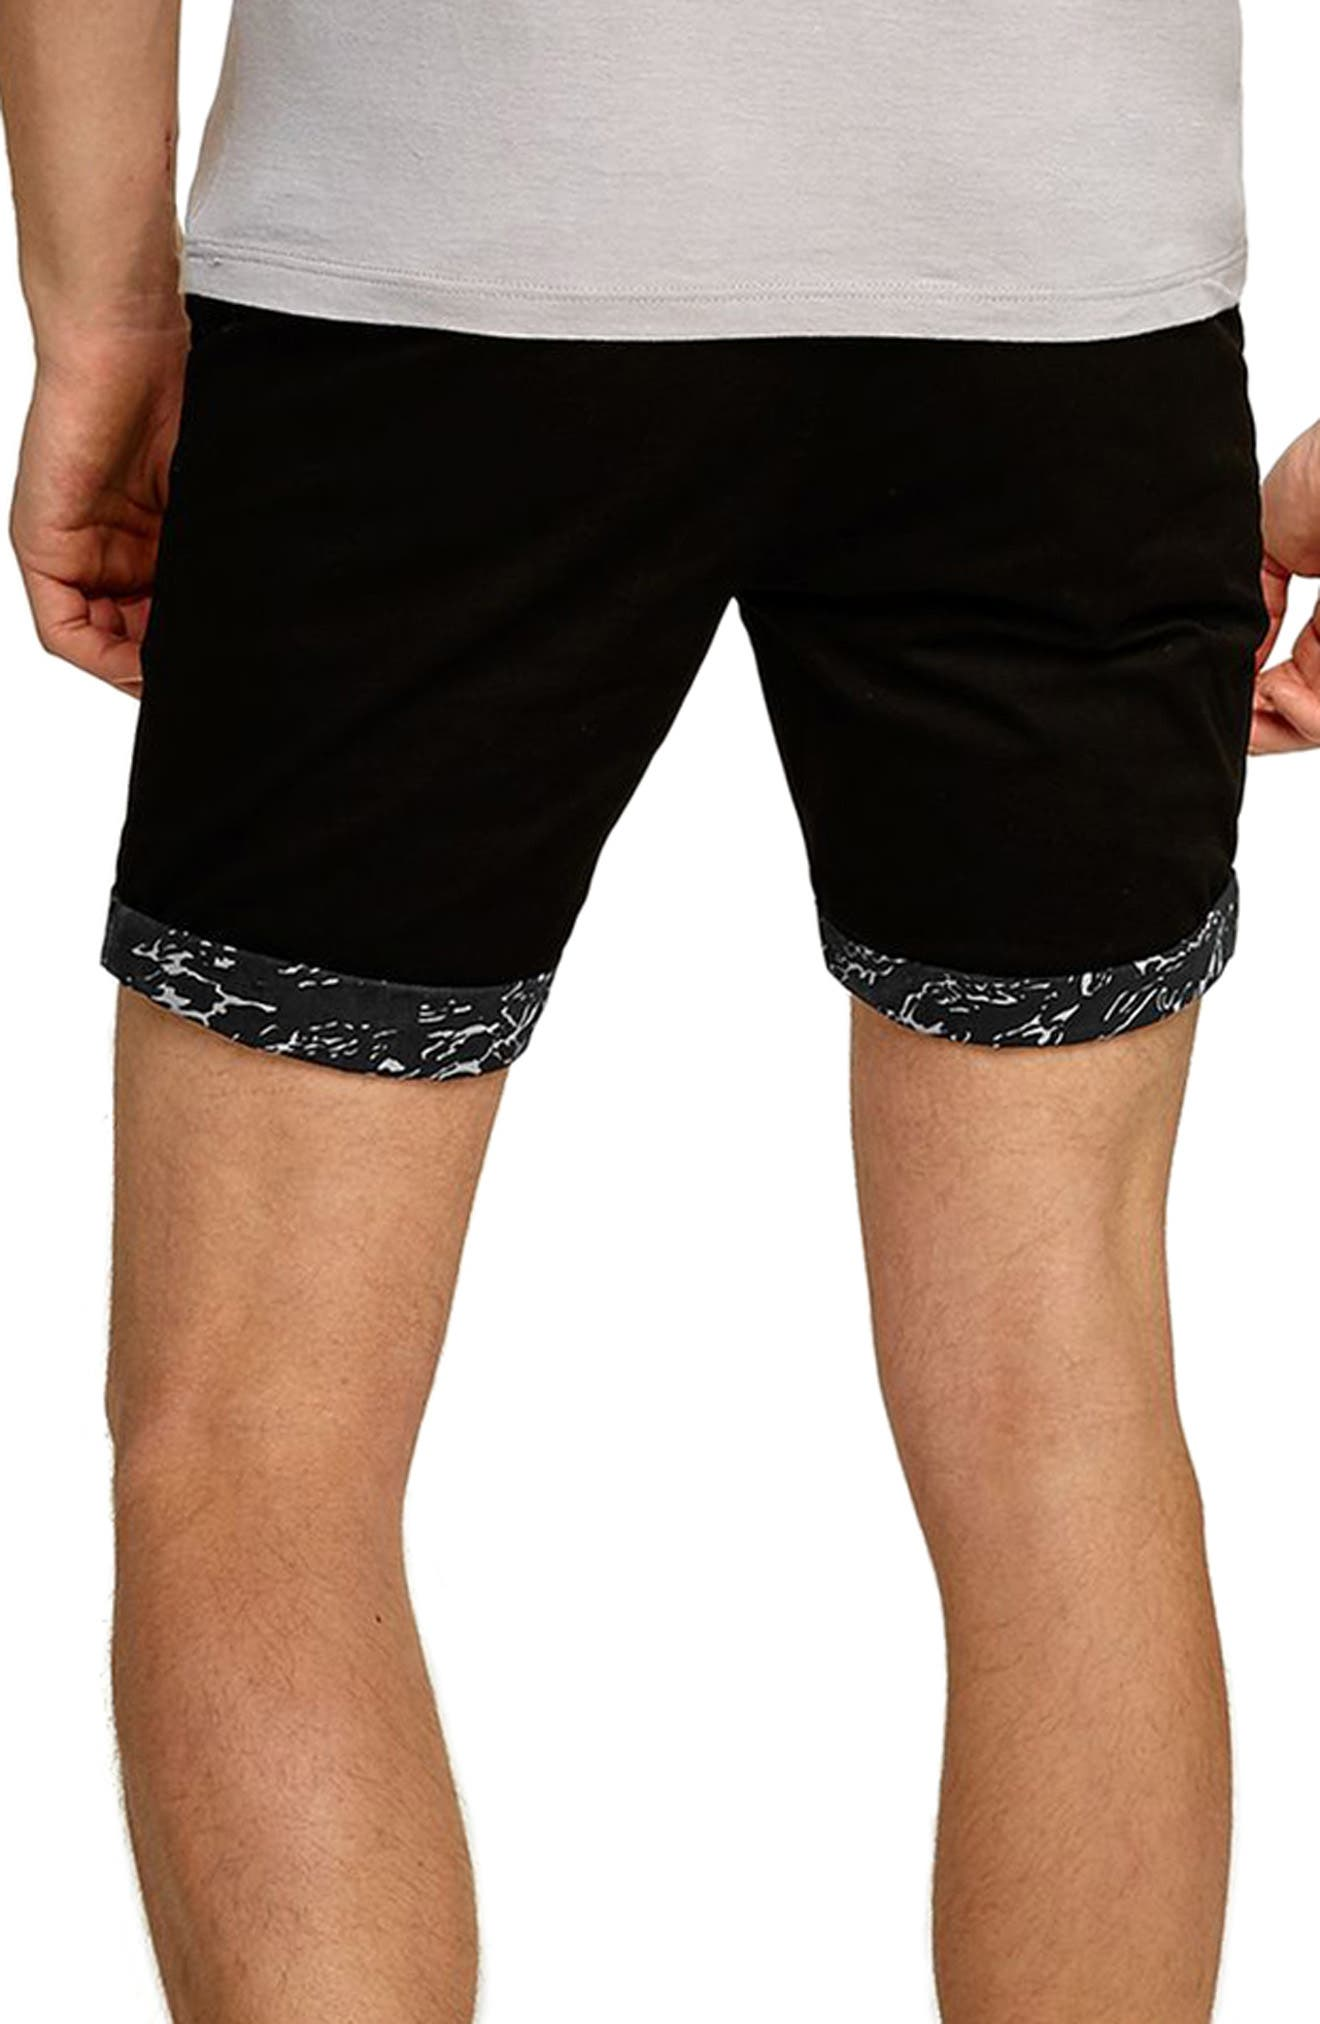 Stretch Skinny Fit Chino Shorts,                             Alternate thumbnail 2, color,                             BLACK MULTI